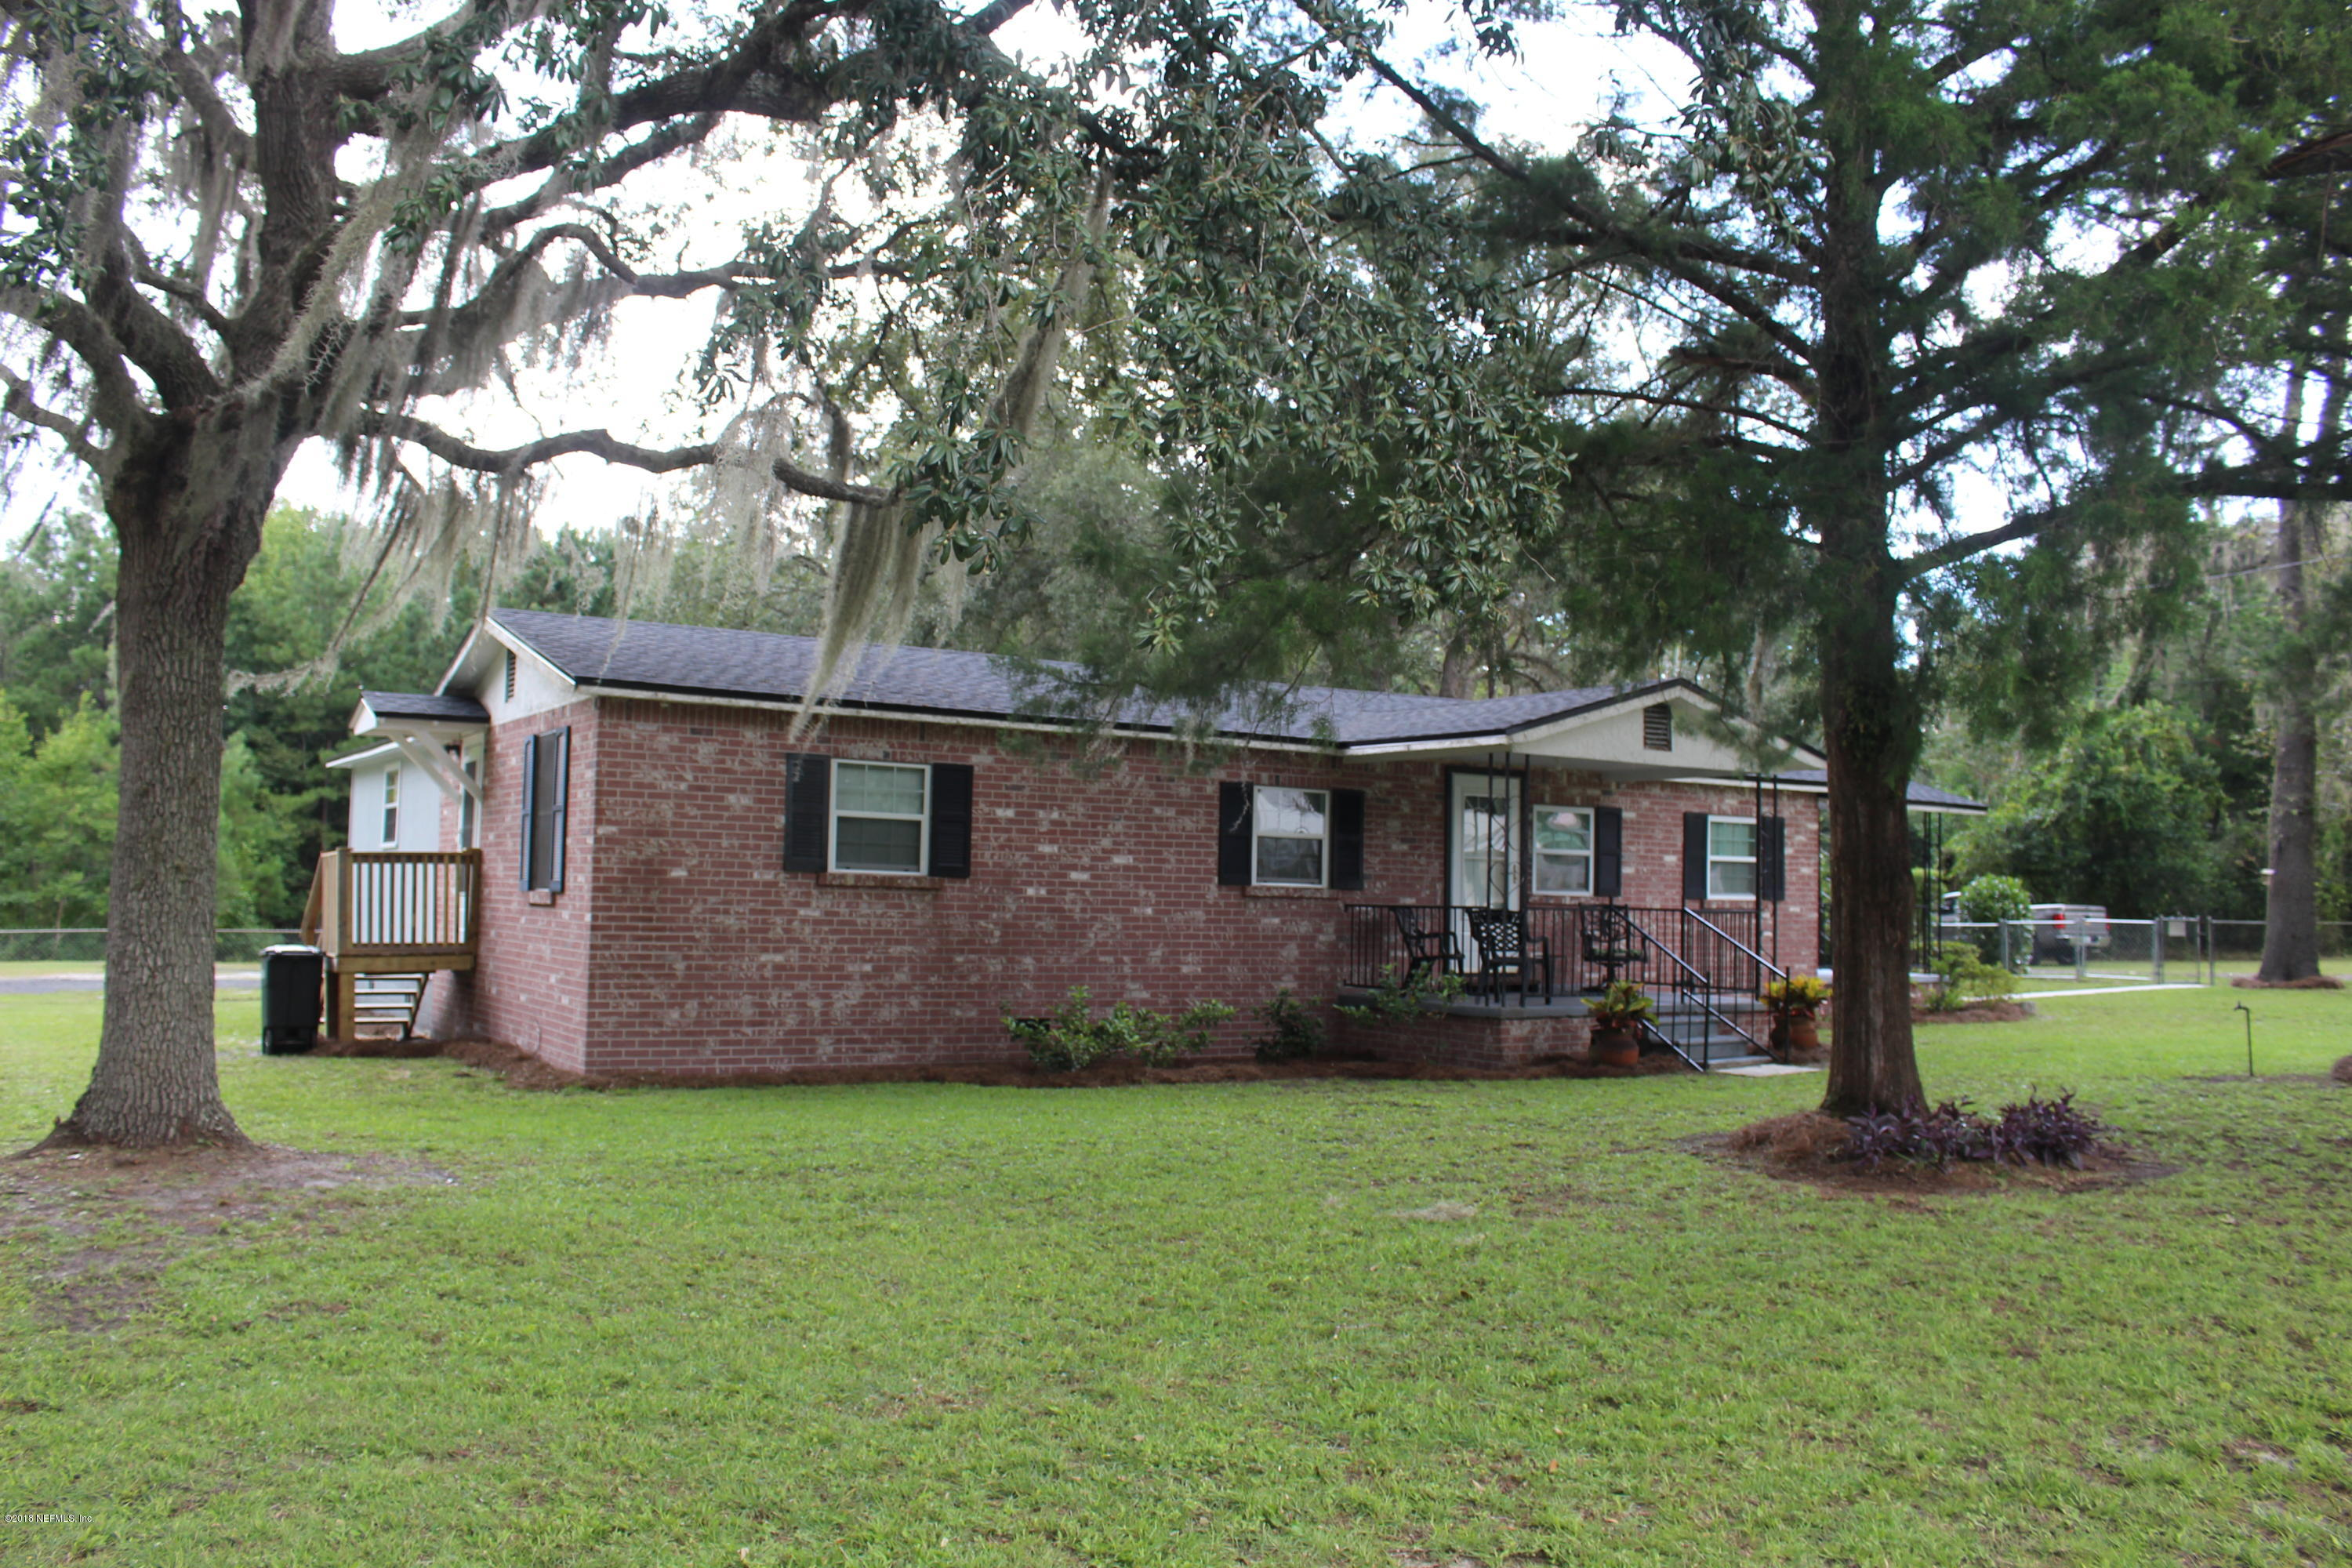 4030 EVERETT, MIDDLEBURG, FLORIDA 32068, 2 Bedrooms Bedrooms, ,1 BathroomBathrooms,Residential - single family,For sale,EVERETT,953445